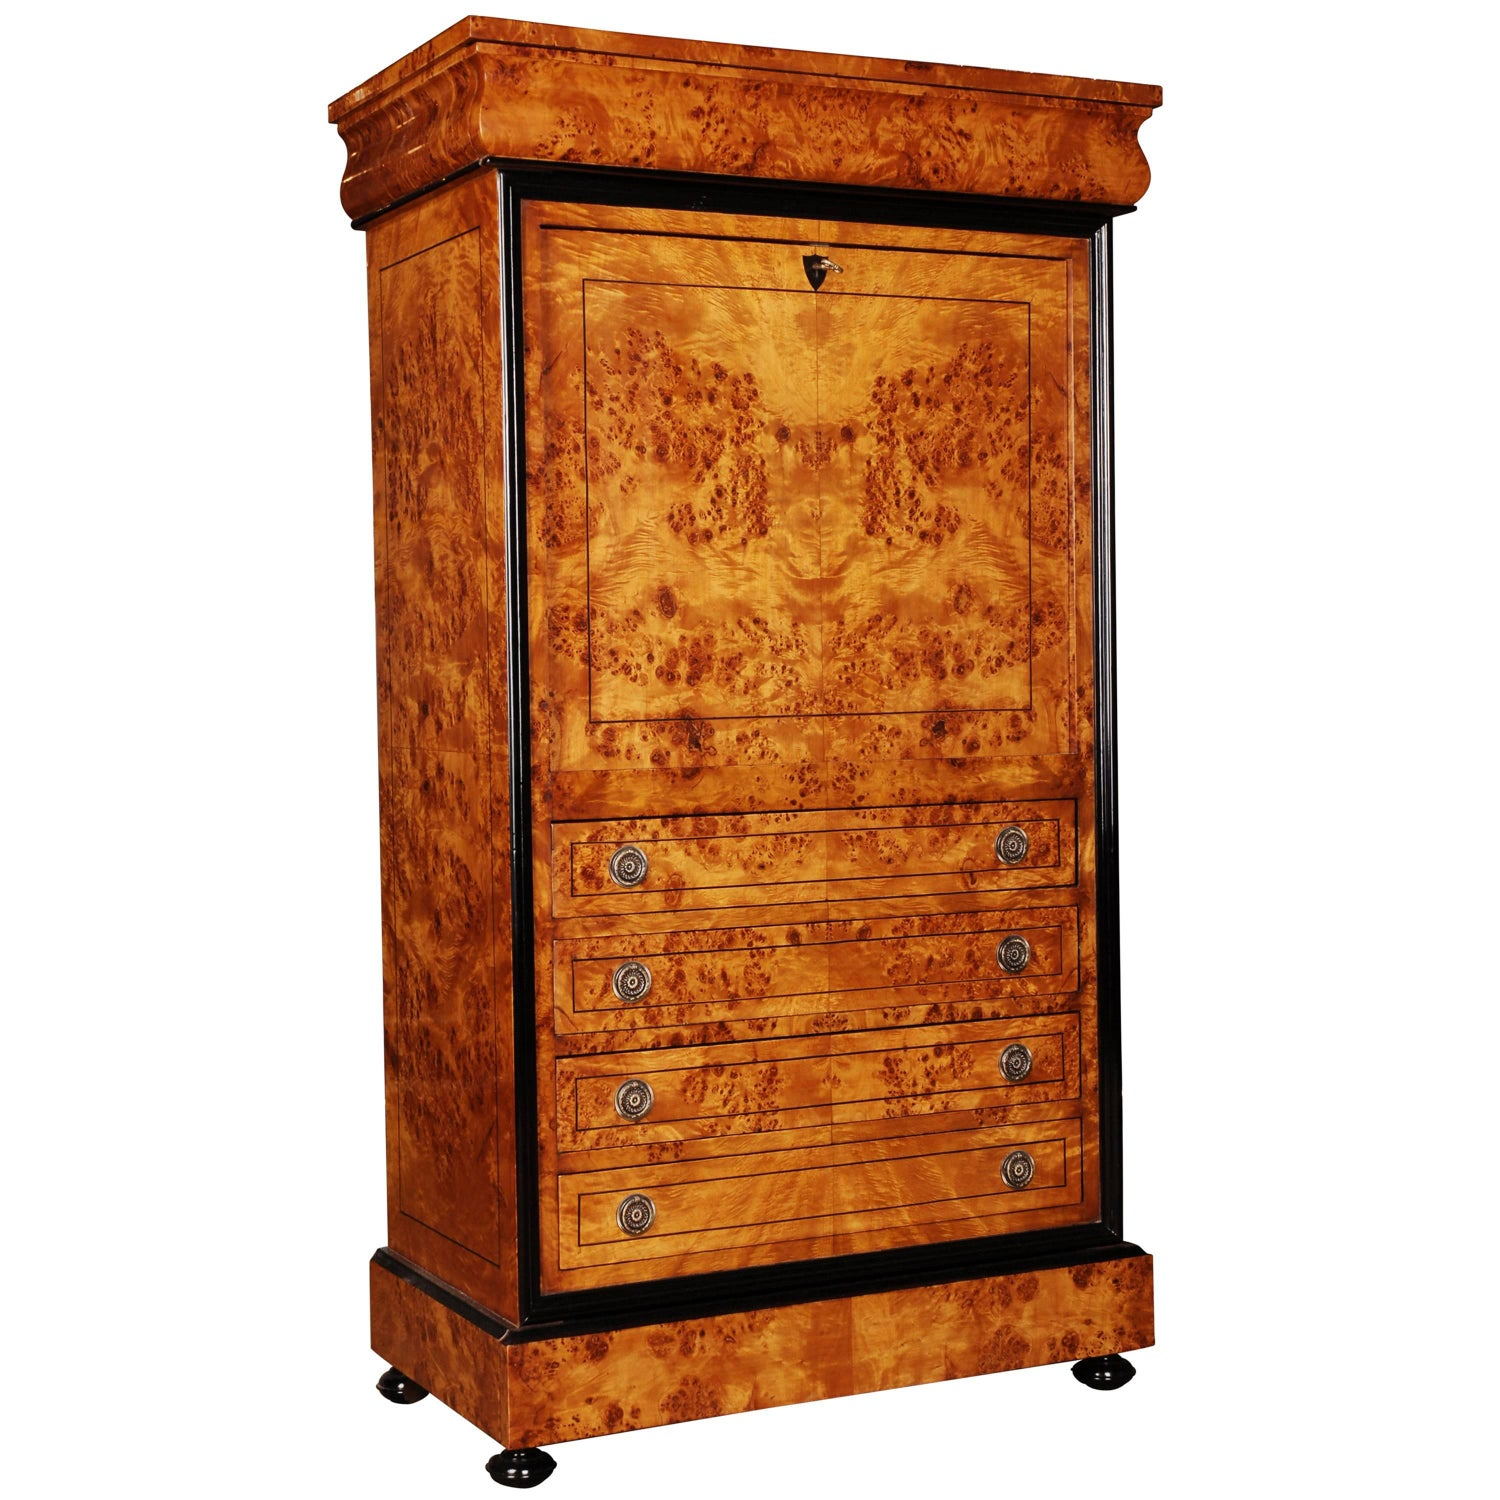 Biedermeier Case Pieces and Storage Cabinets - 451 For Sale at 1stdibs